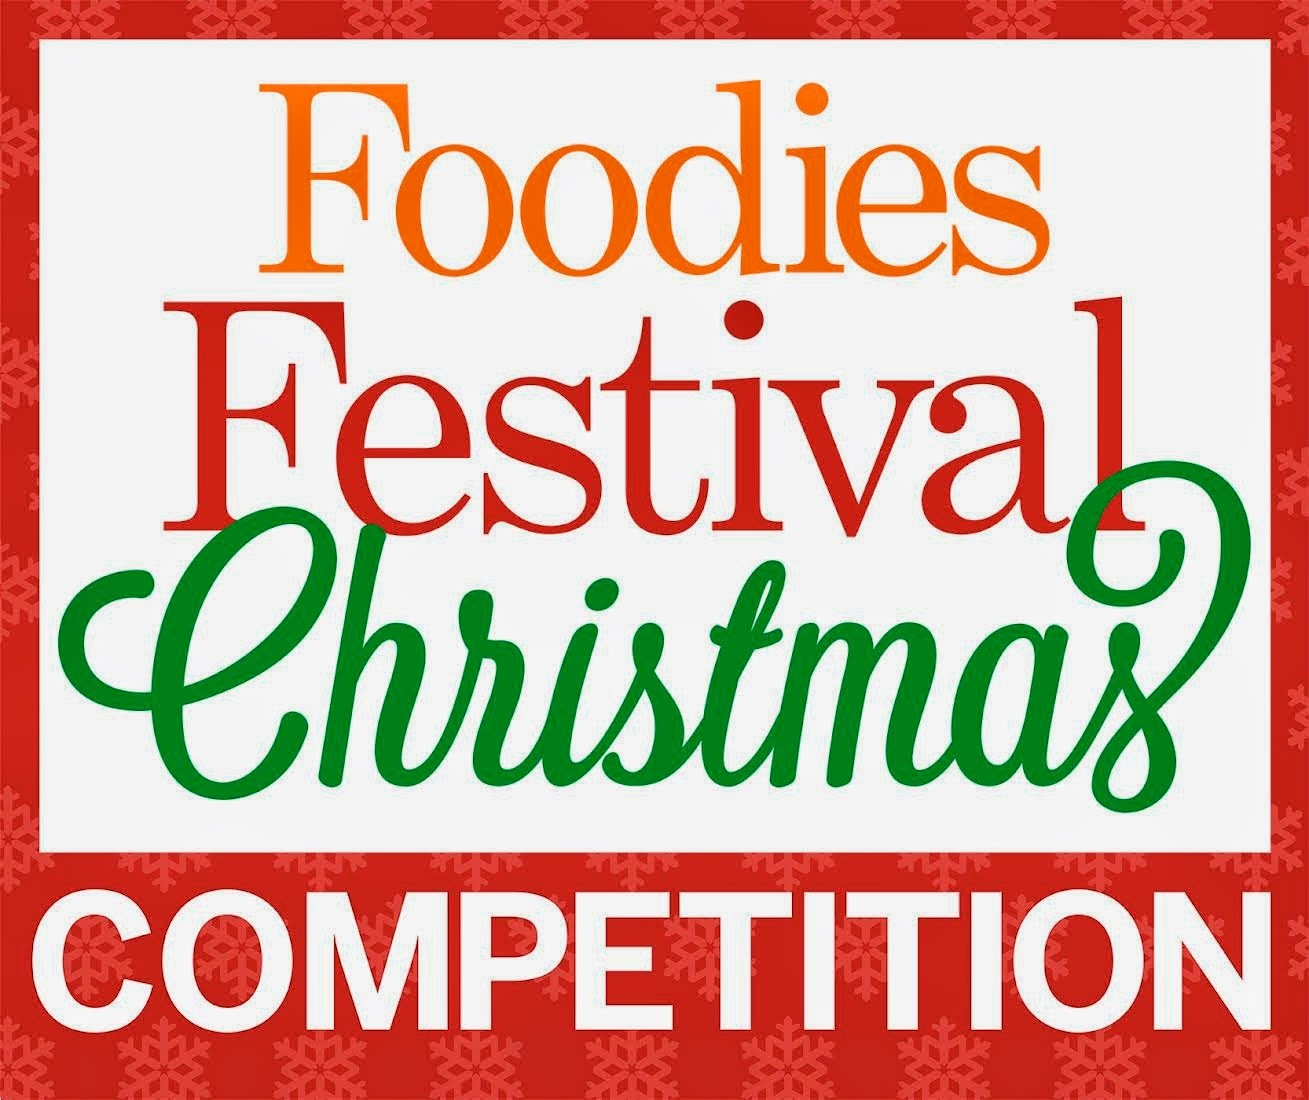 Win tickets to Foodies Festival Christmas